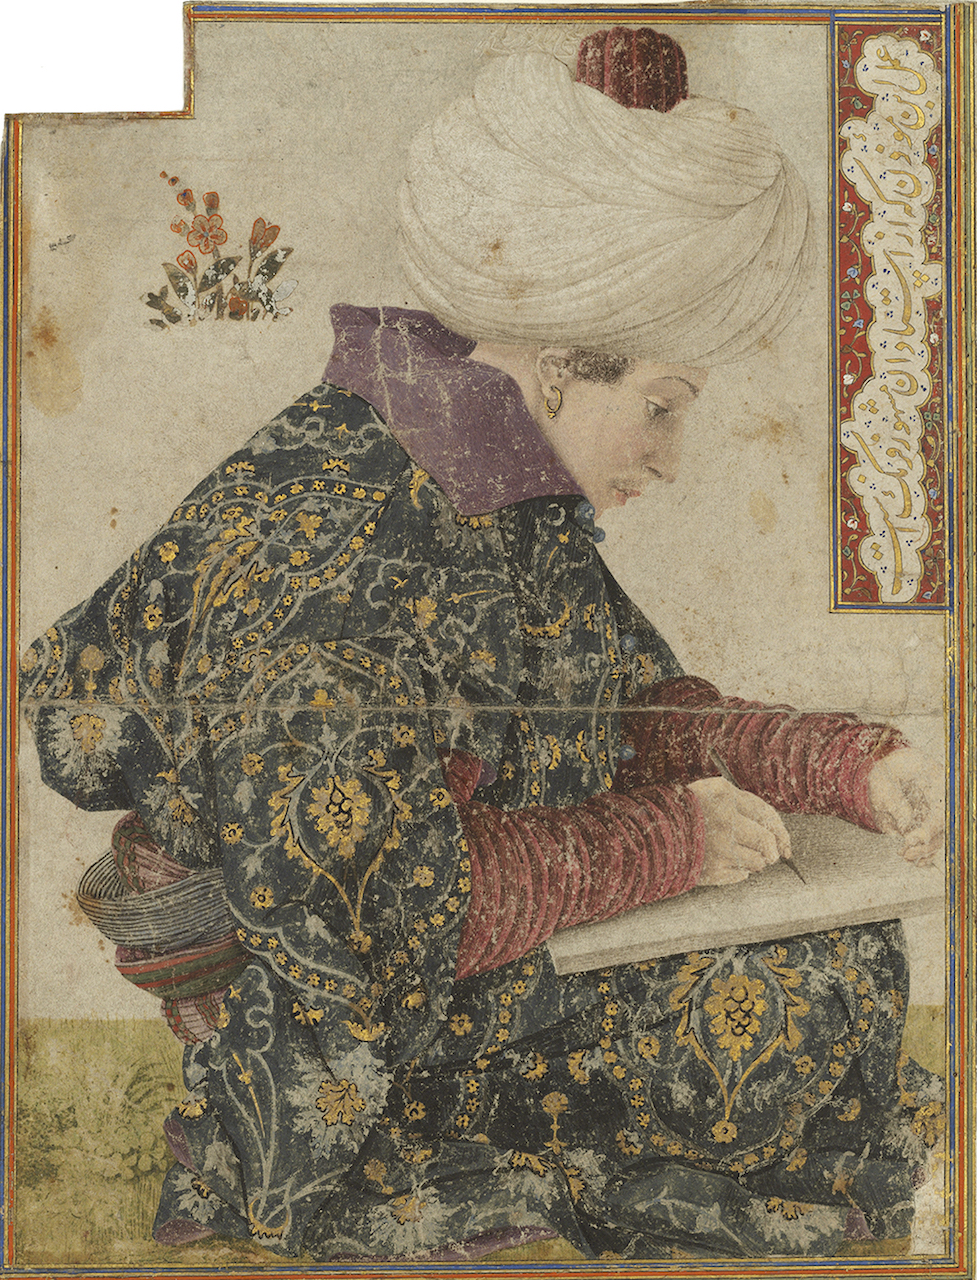 Depiction of an elegantly dressed Ottoman scribe done in pen in brown ink with watercolor and gold on paper.